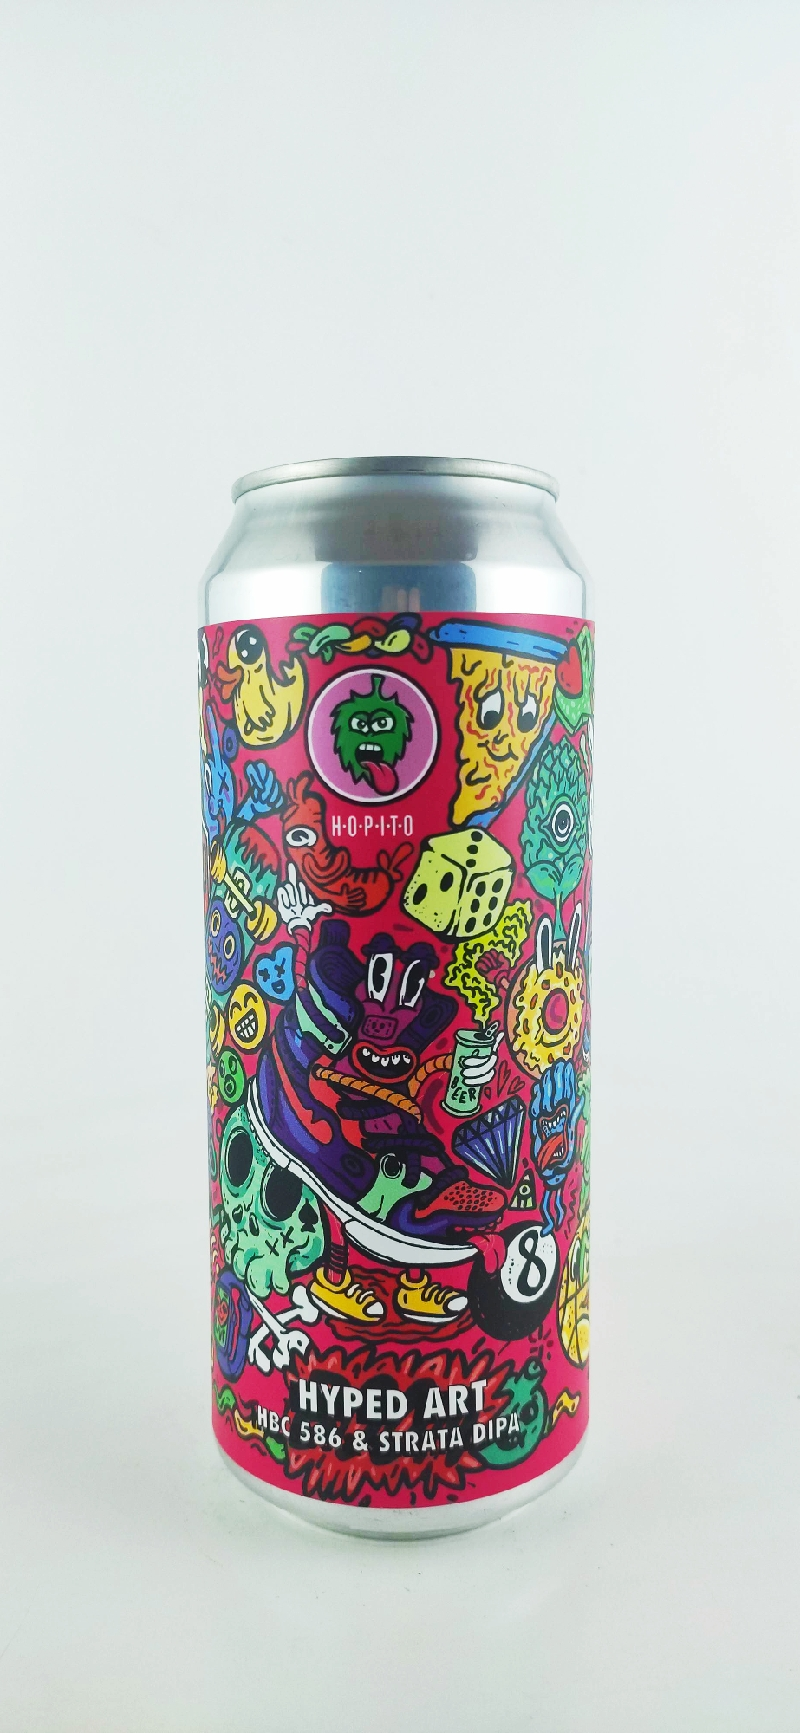 Hopito Hyped Art DIPA 19°